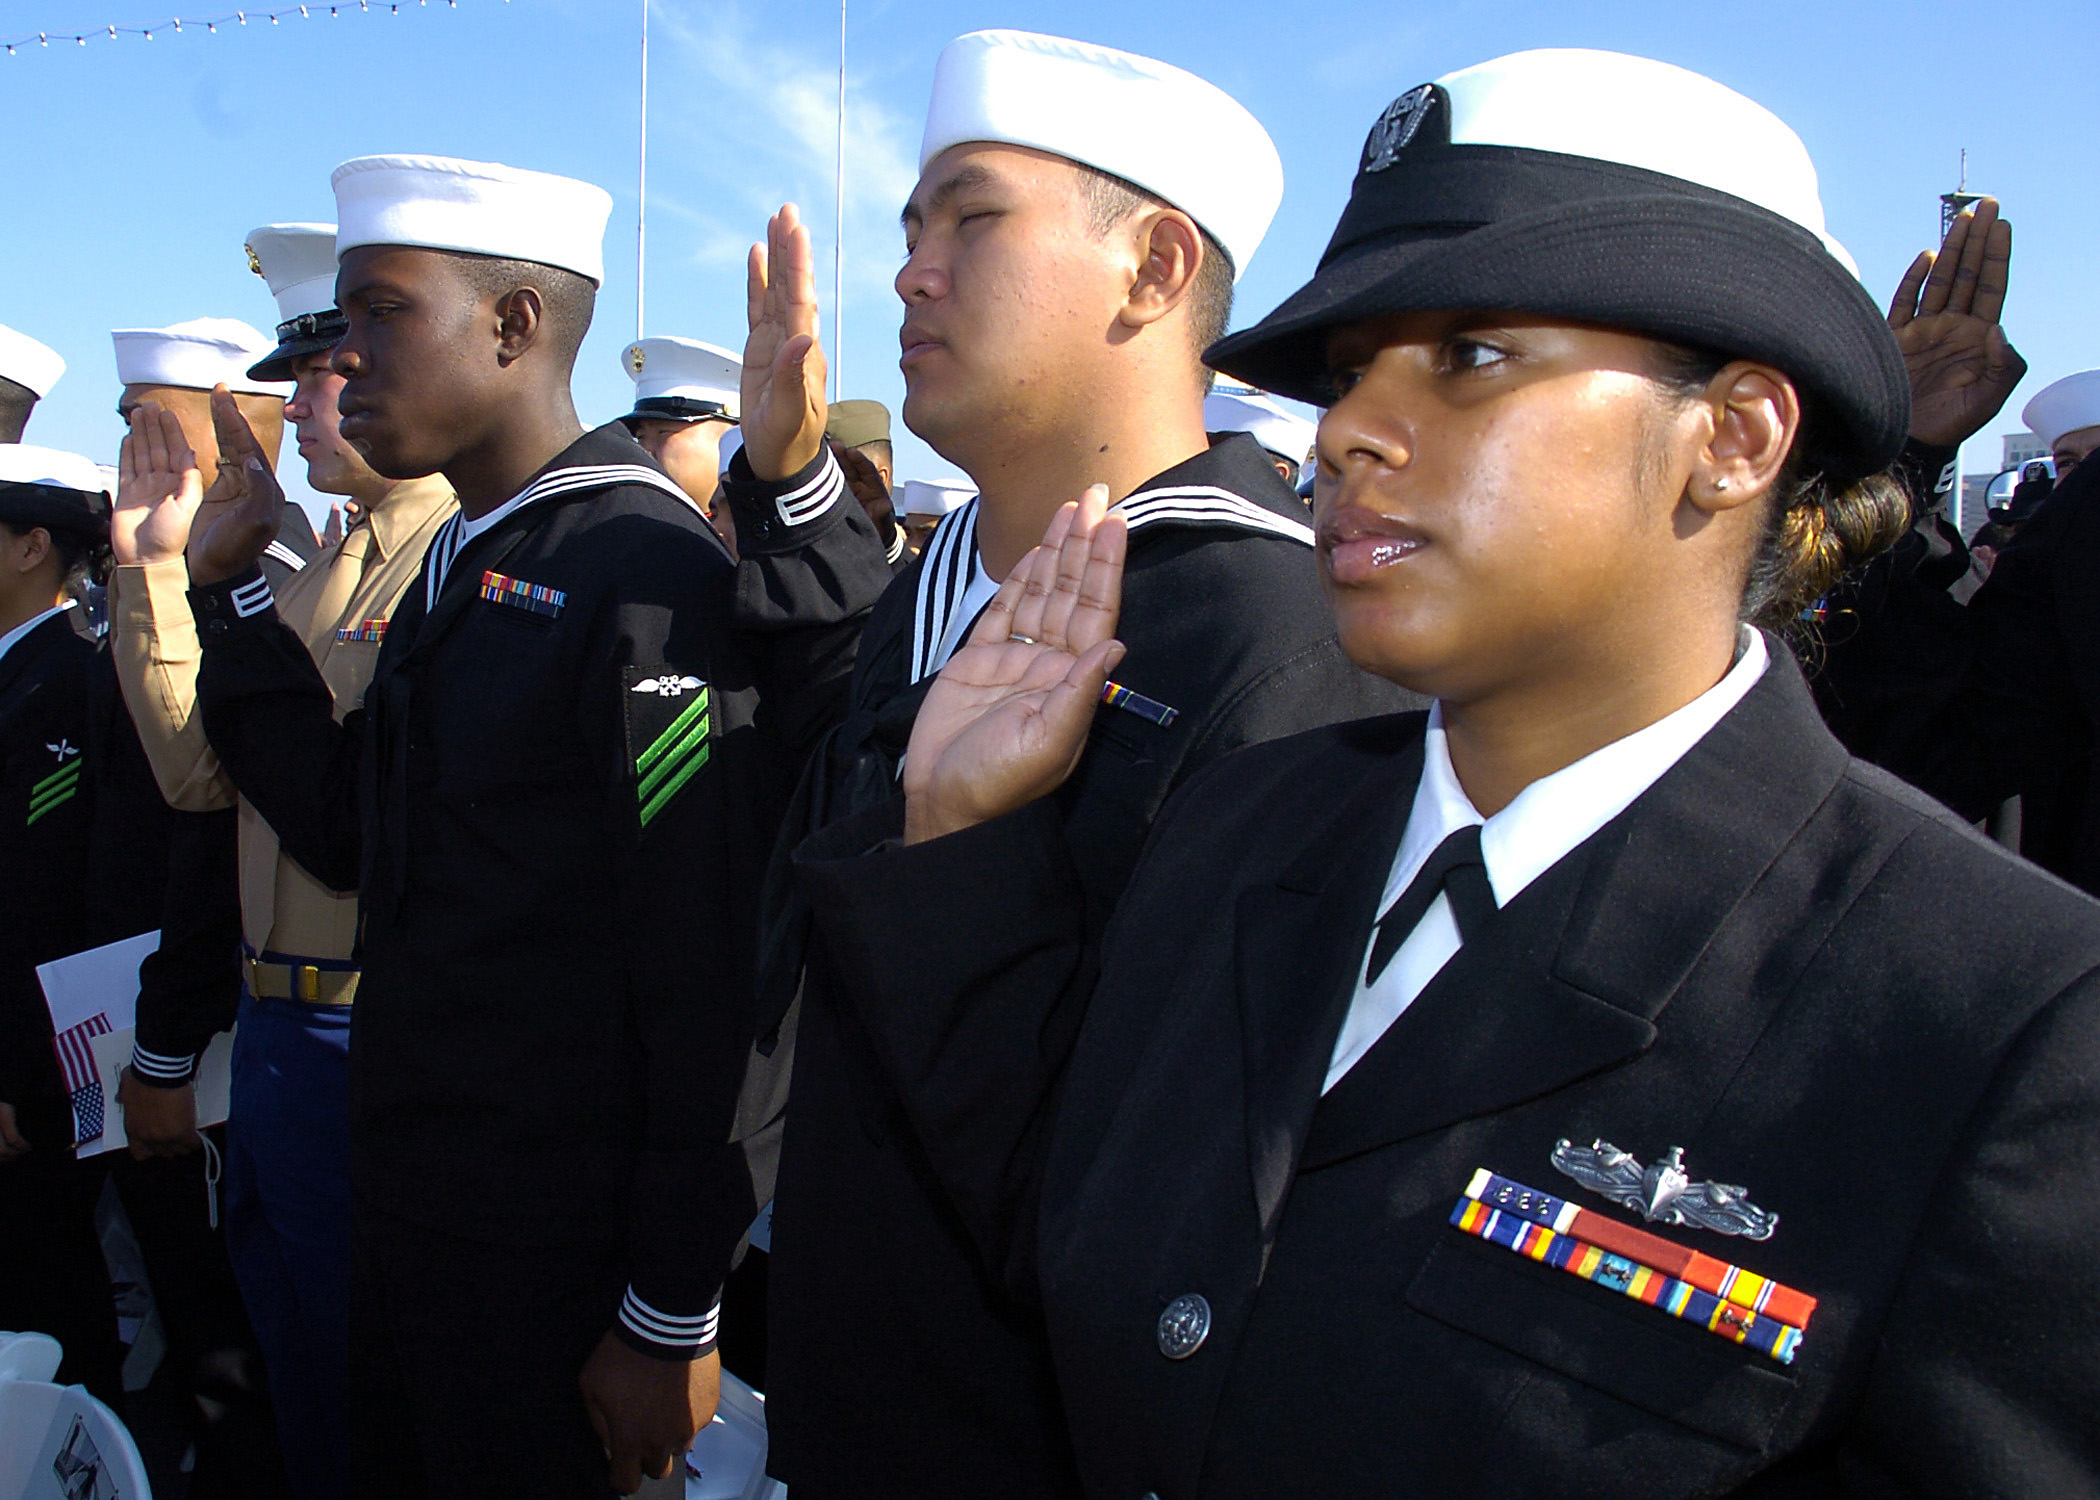 File:US Navy 081111-N-3925A-006 ailors and Marines take the